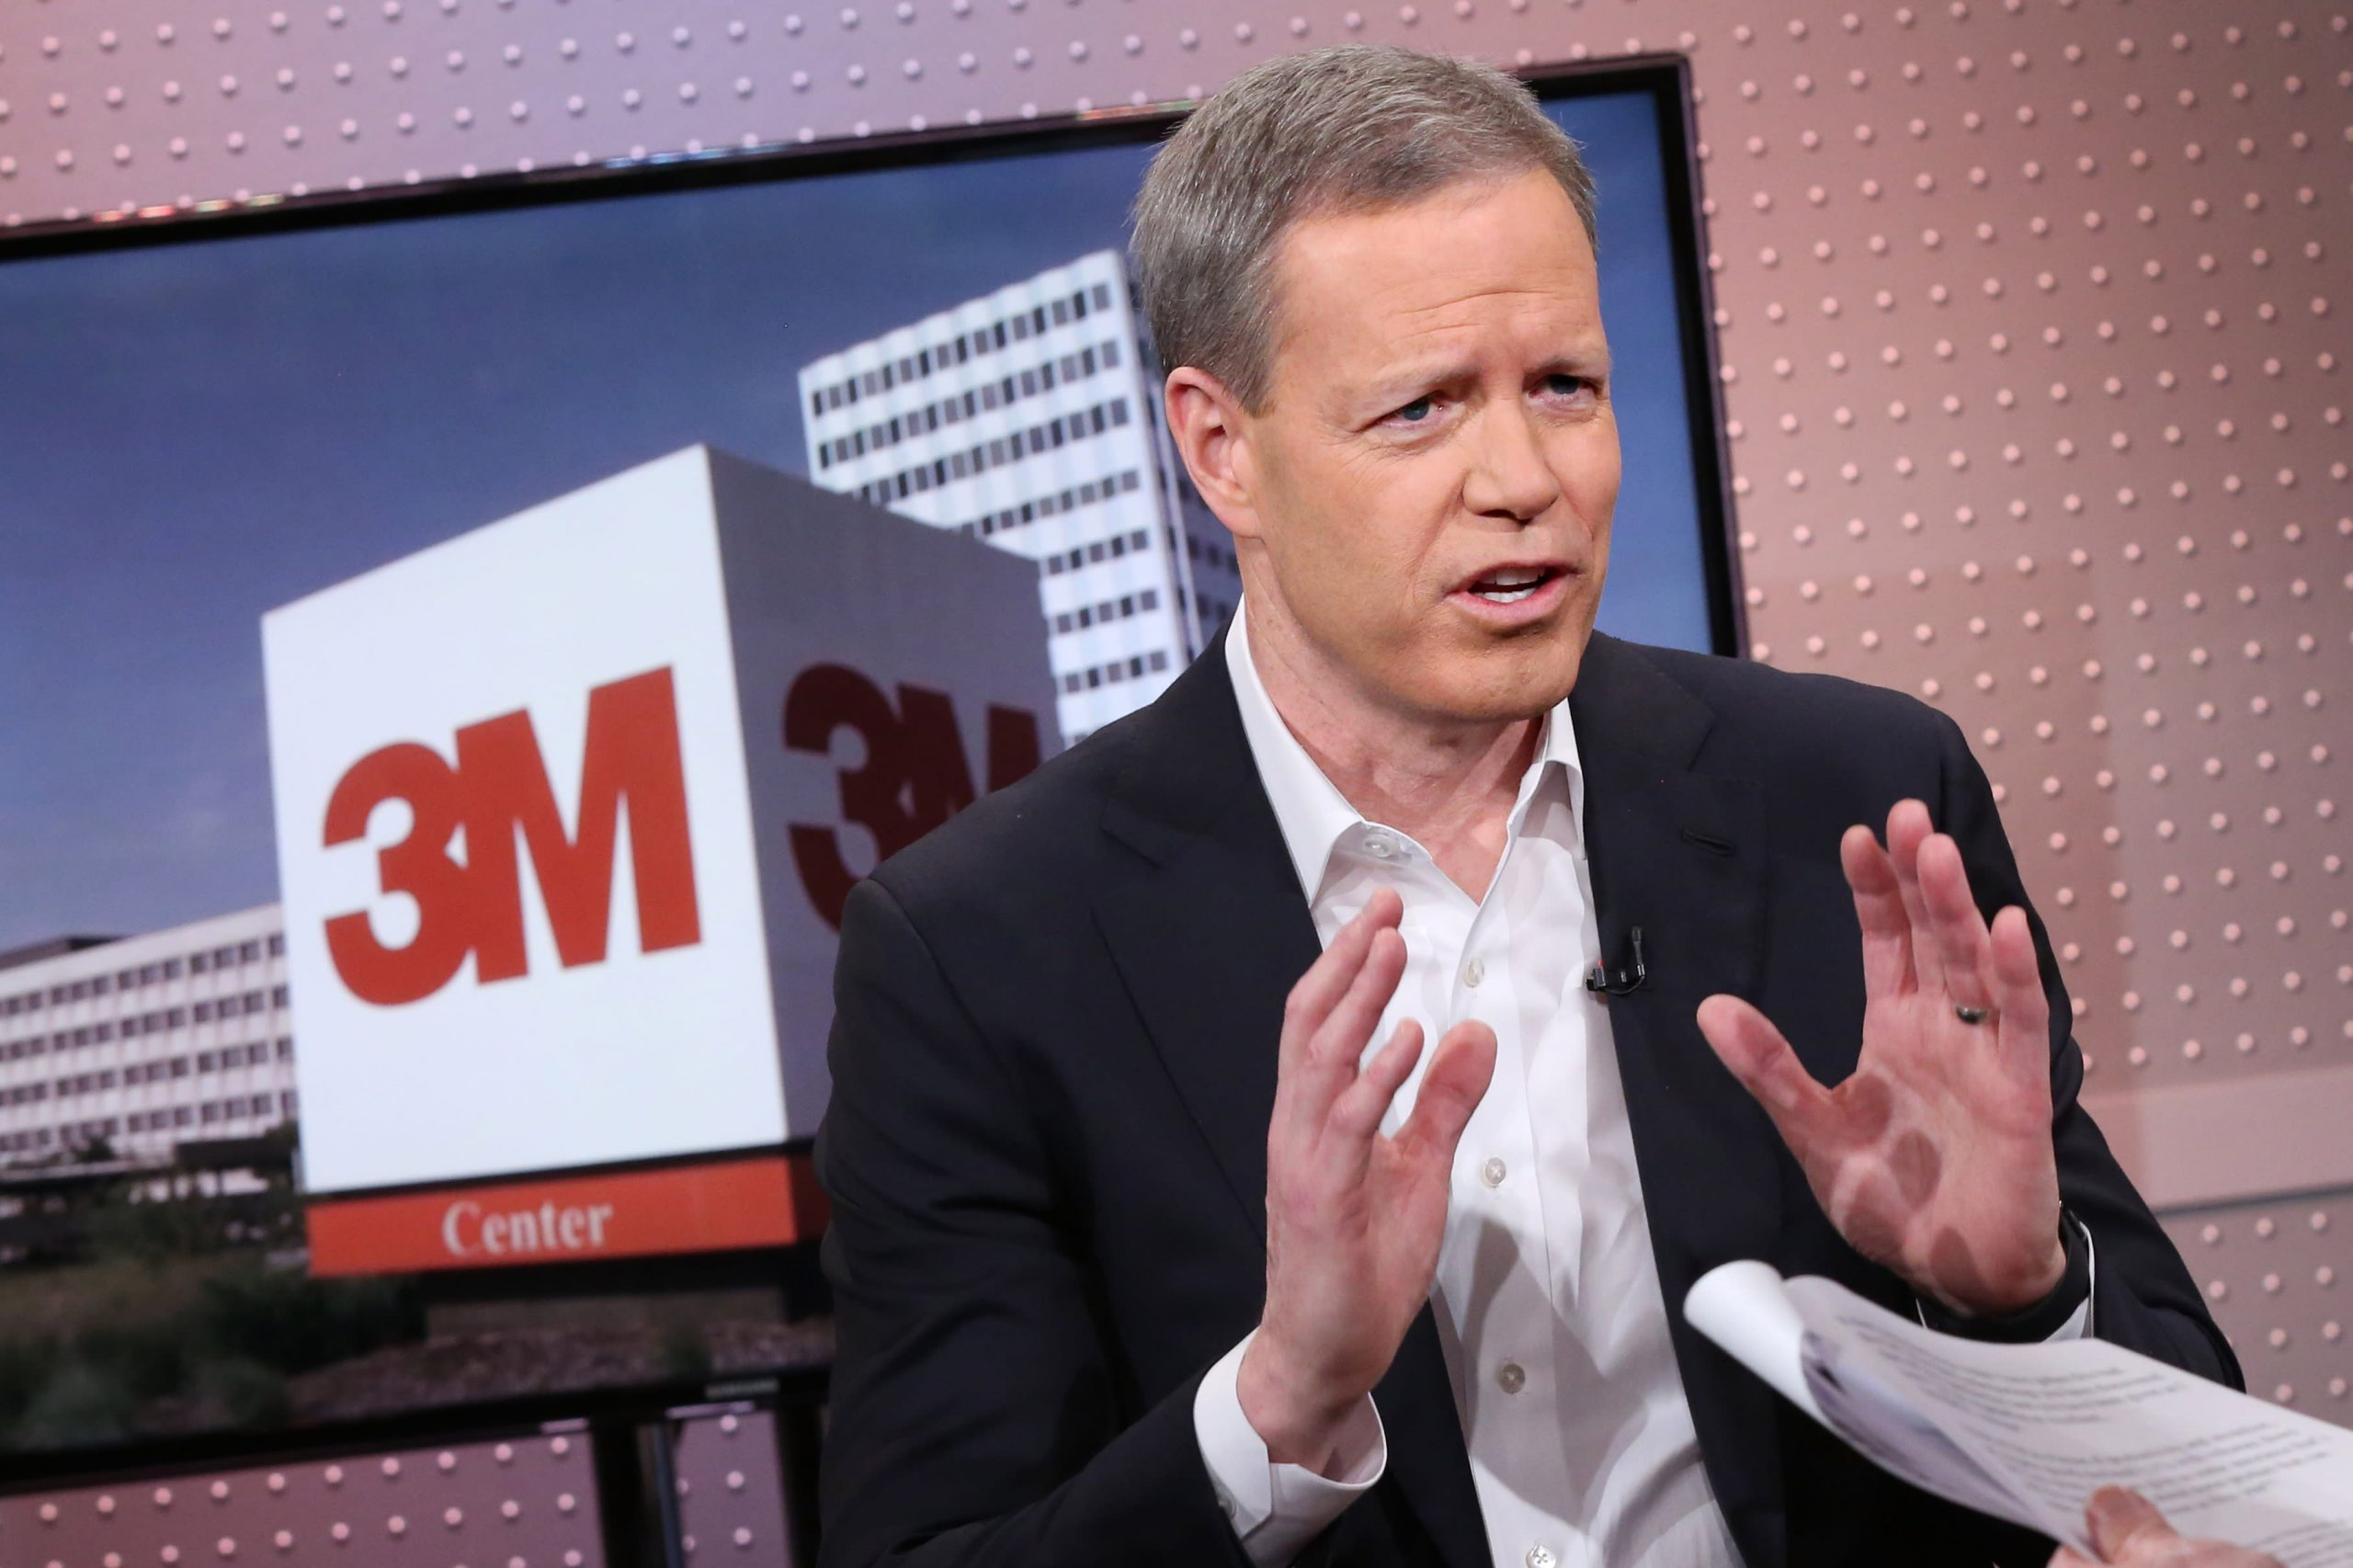 JP Morgan's Tusa upgrades 3M, saying the stock 'is not that bad' anymore